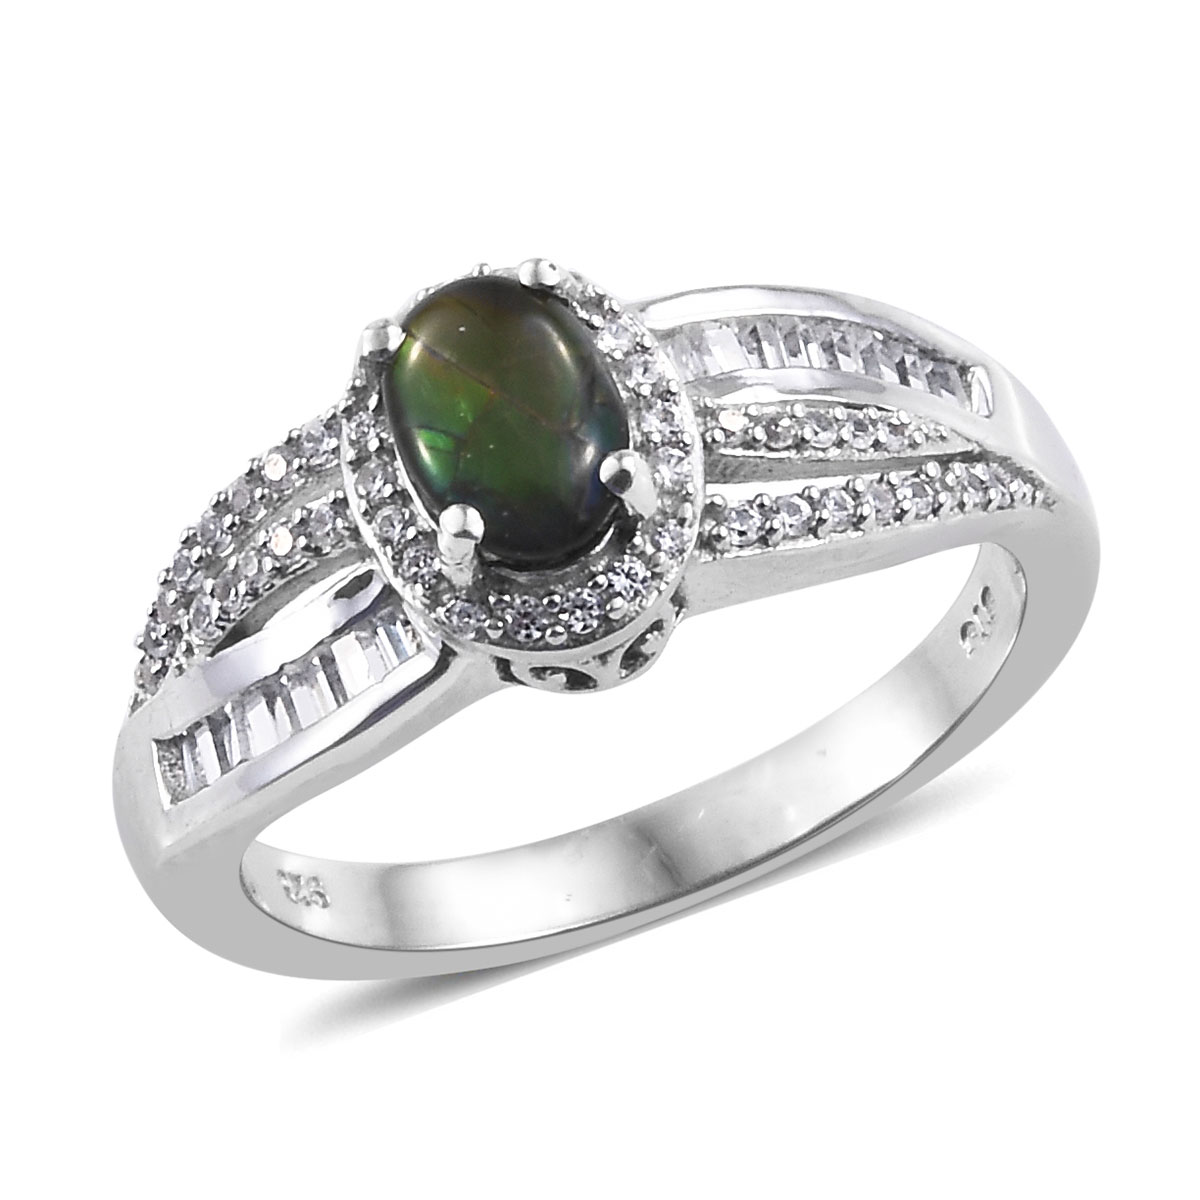 Canadian Ammolite, Cambodian Zircon Ring (Size 8) and Pendant Necklace (20 in) in Platinum Over Sterling Silver 1.24 ctw